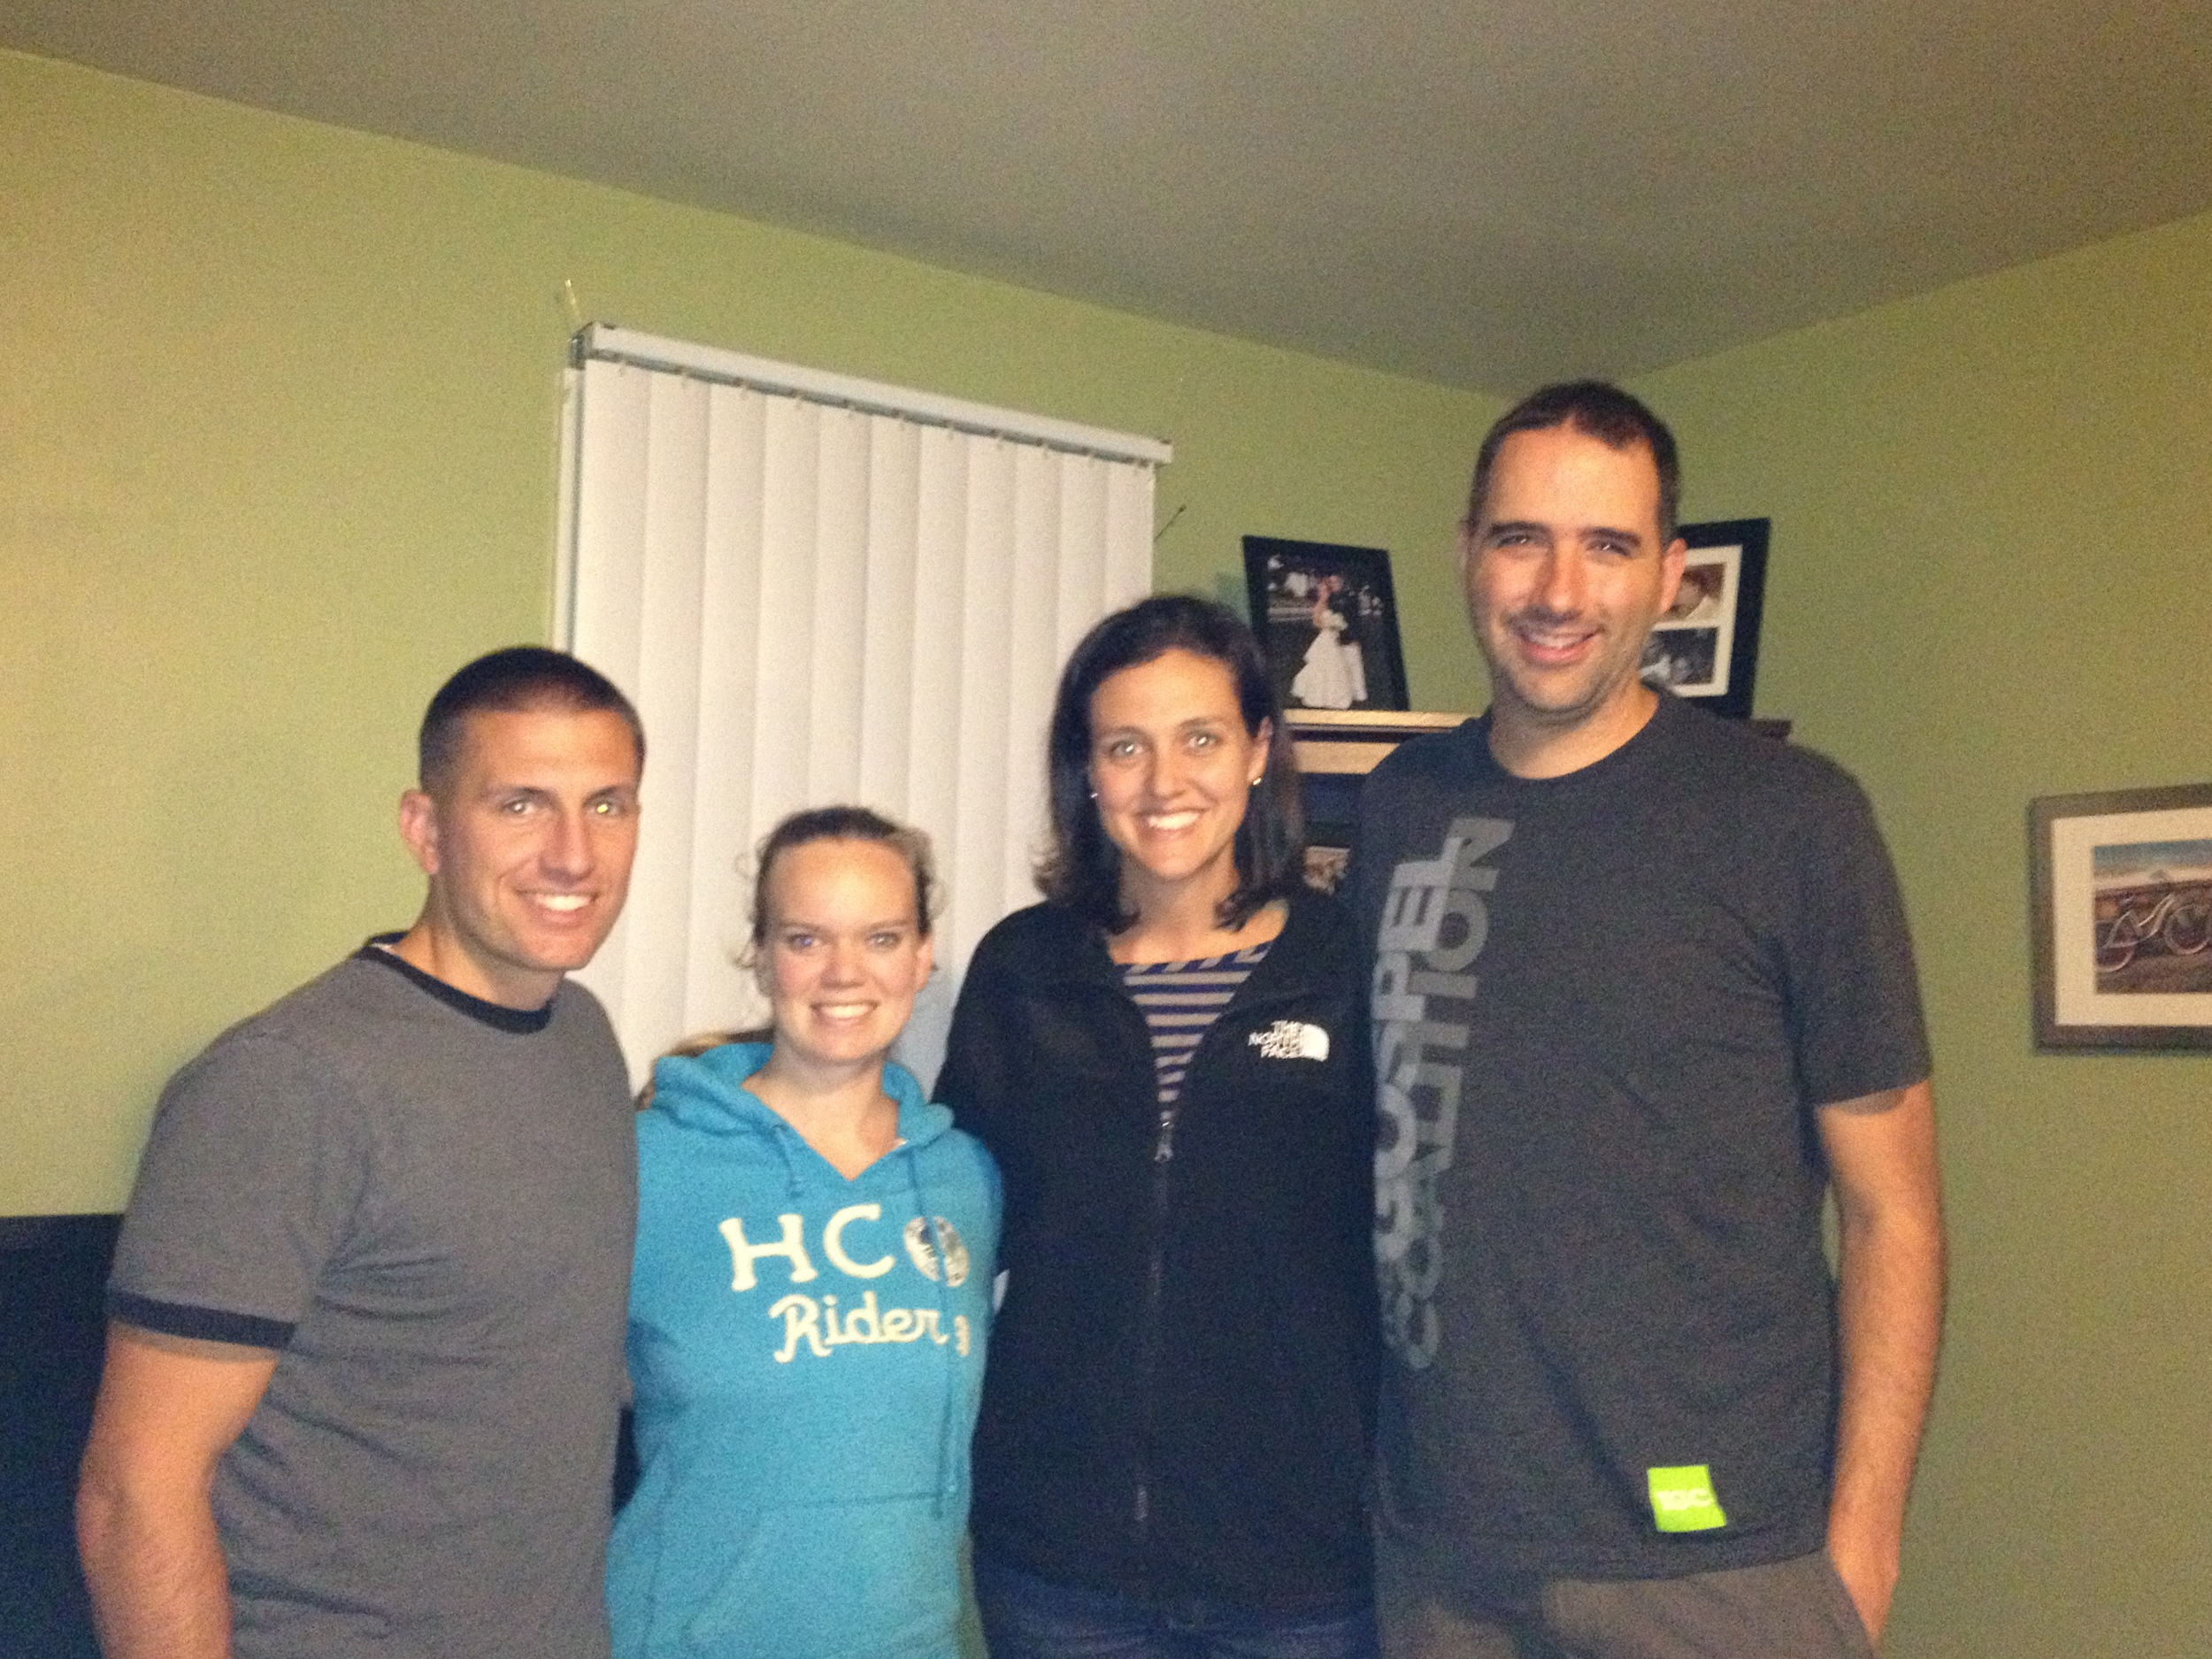 Visiting Steve and Abigail Haack in NC.